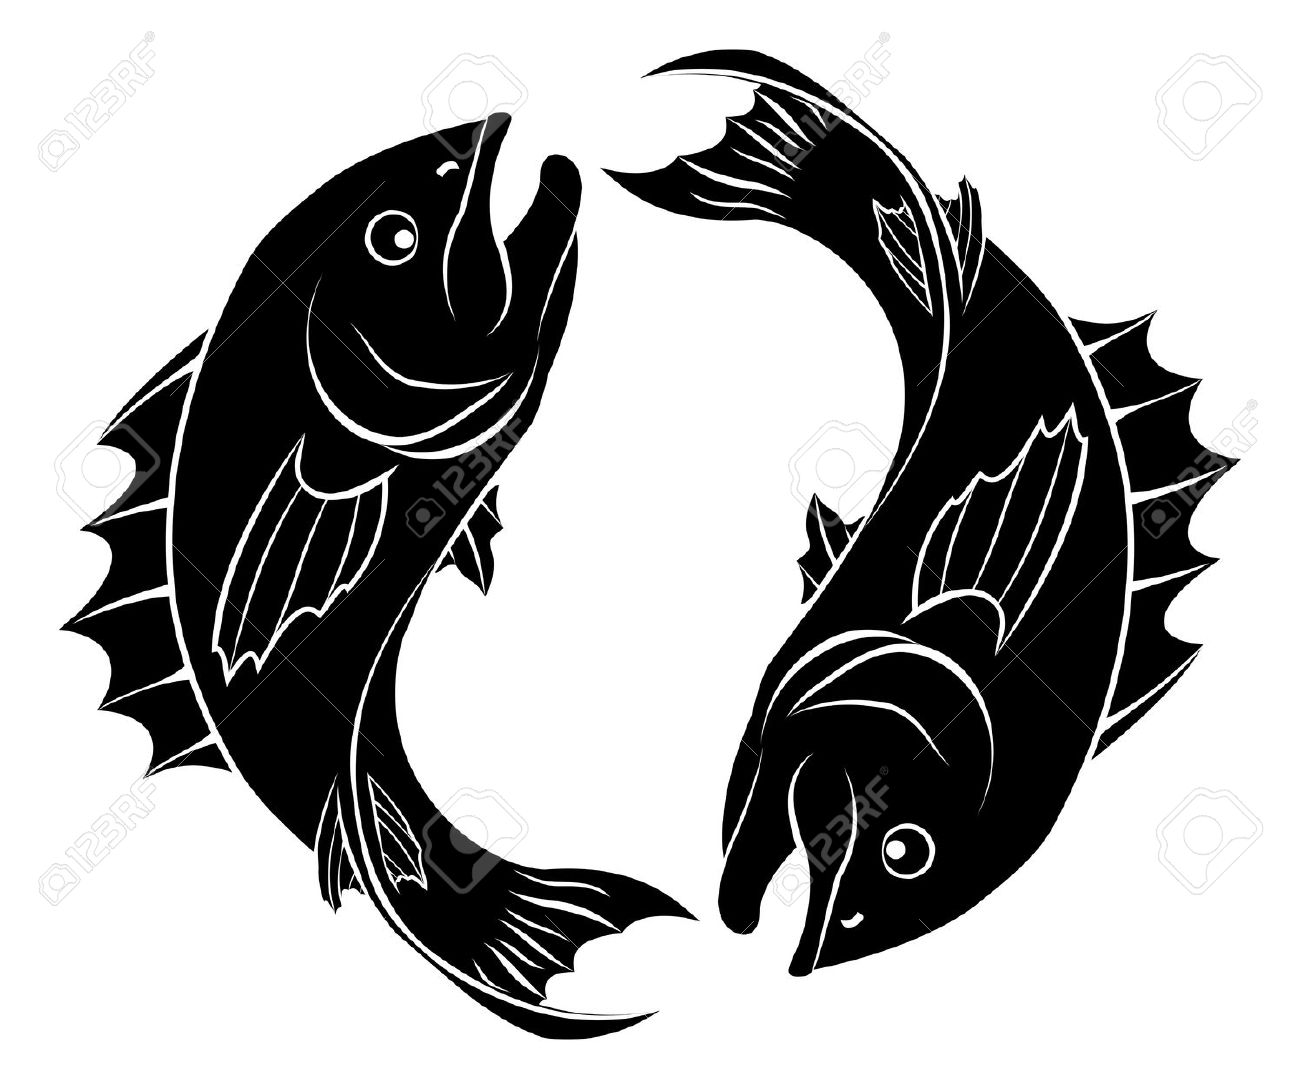 Pisces clipart #18, Download drawings